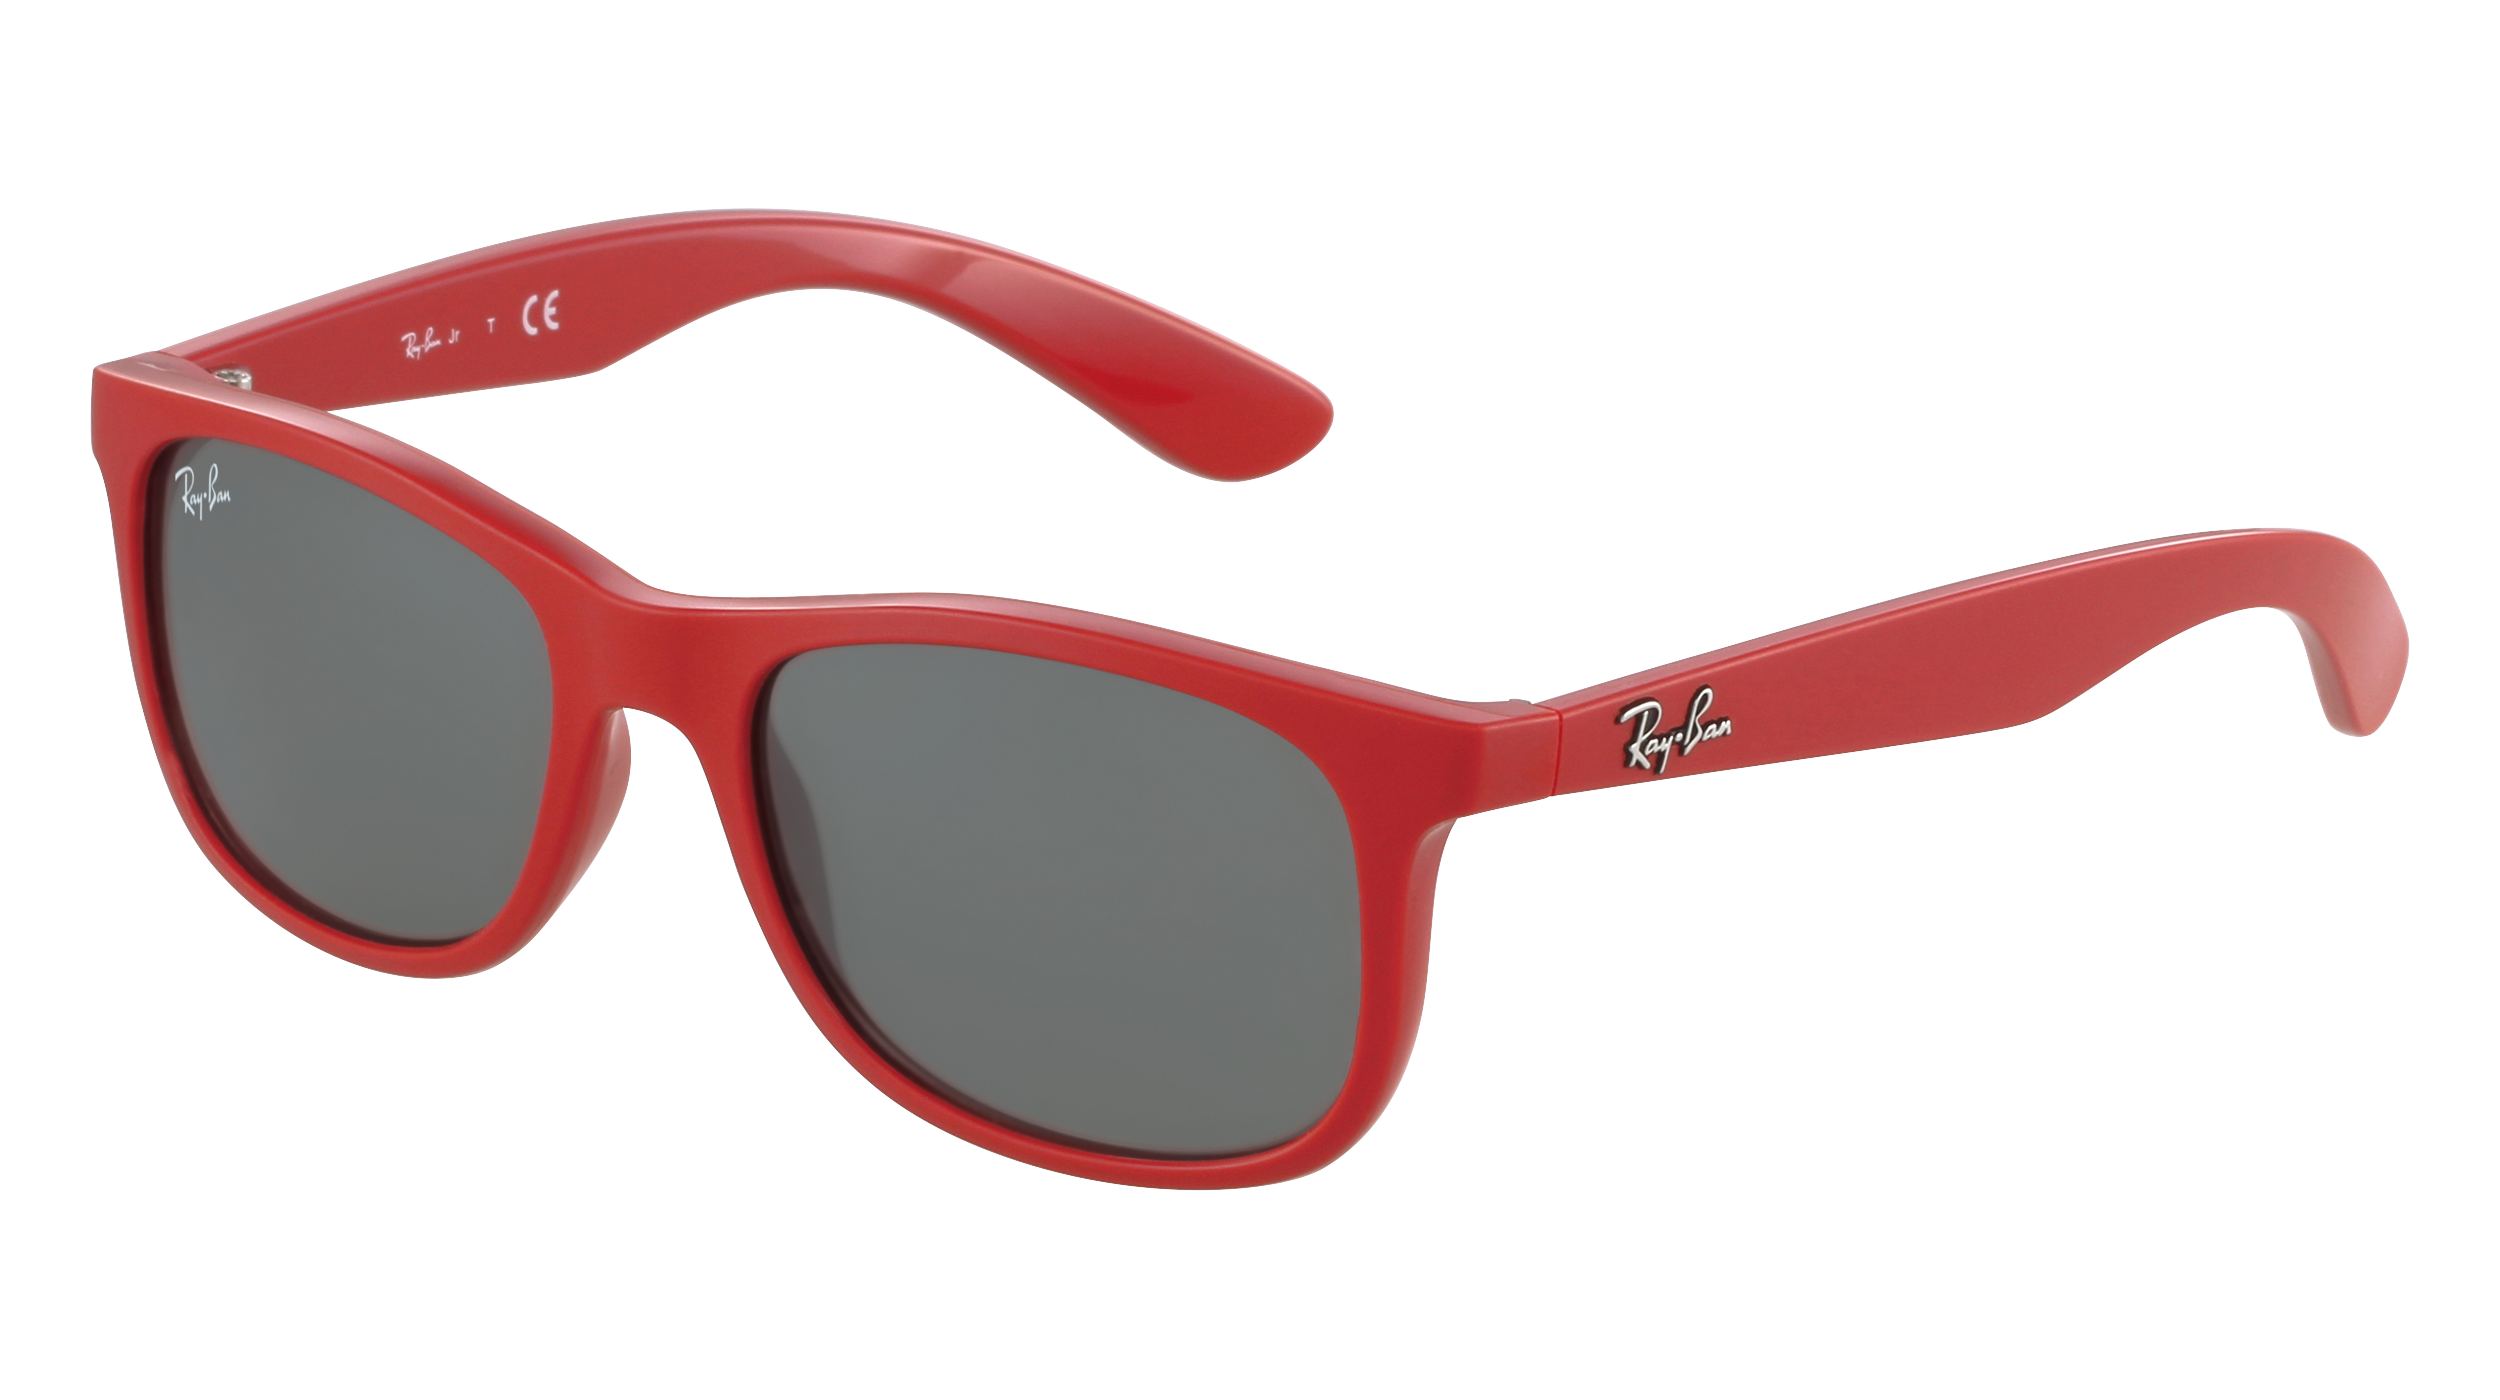 Ray-Ban RJ9062S-S-70156G-48-16-130